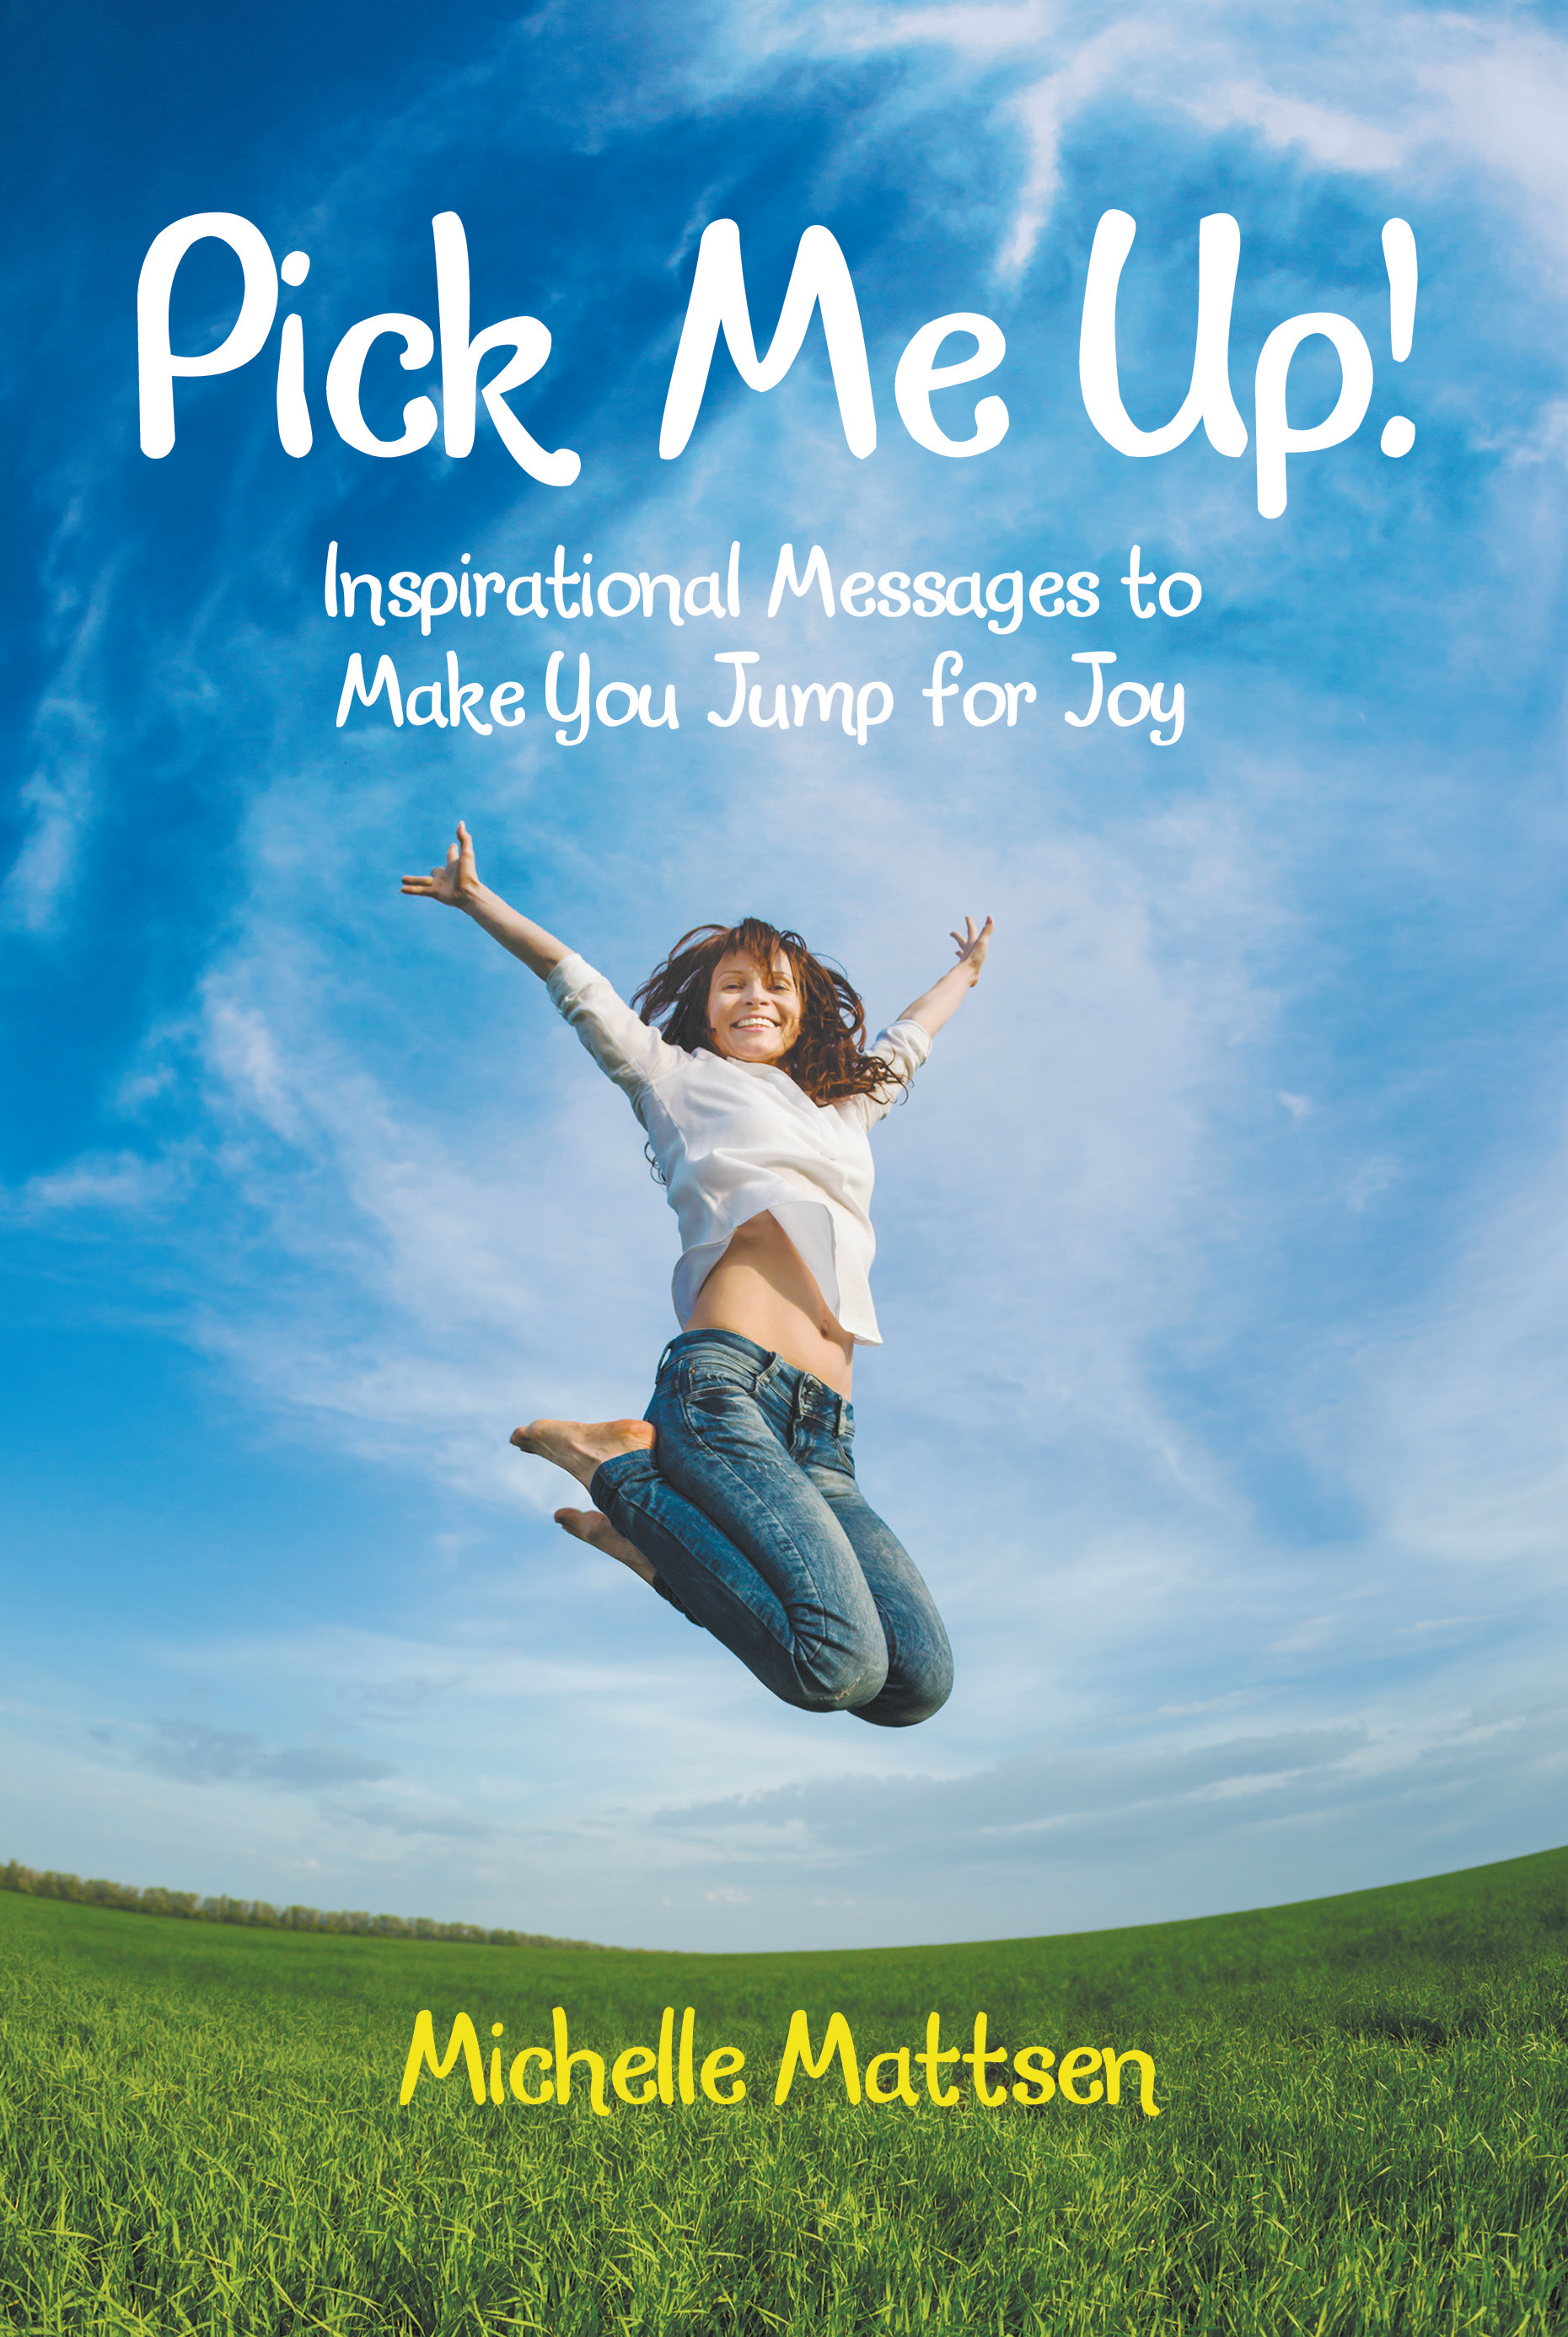 Inspirational Messages Pick Me Up Inspirational Messages To Make You Jump For Joy